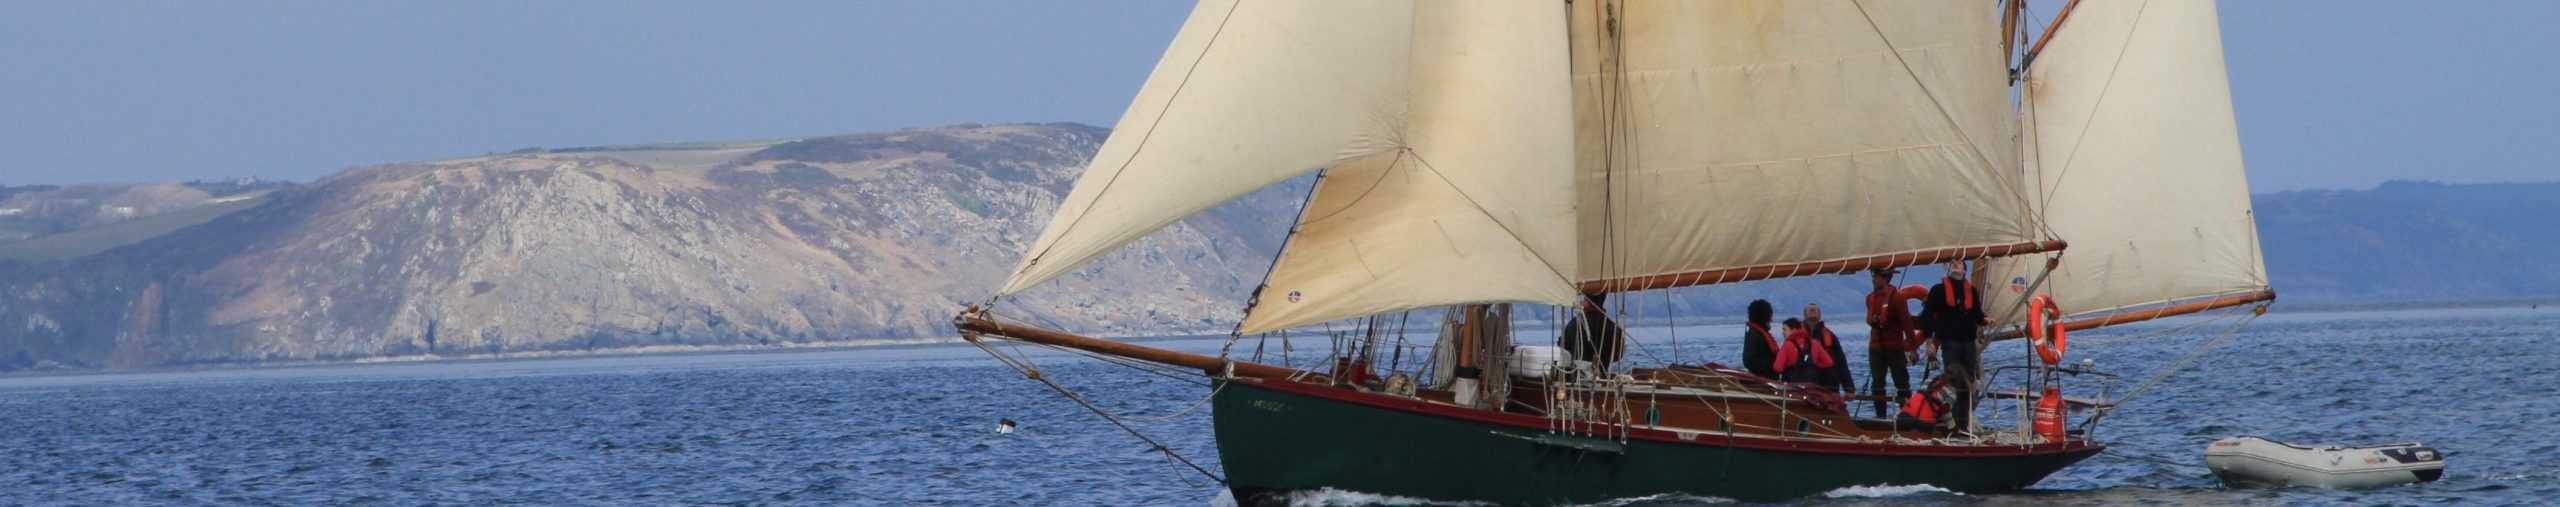 The beauty of RYA Courses on traditional yachts.